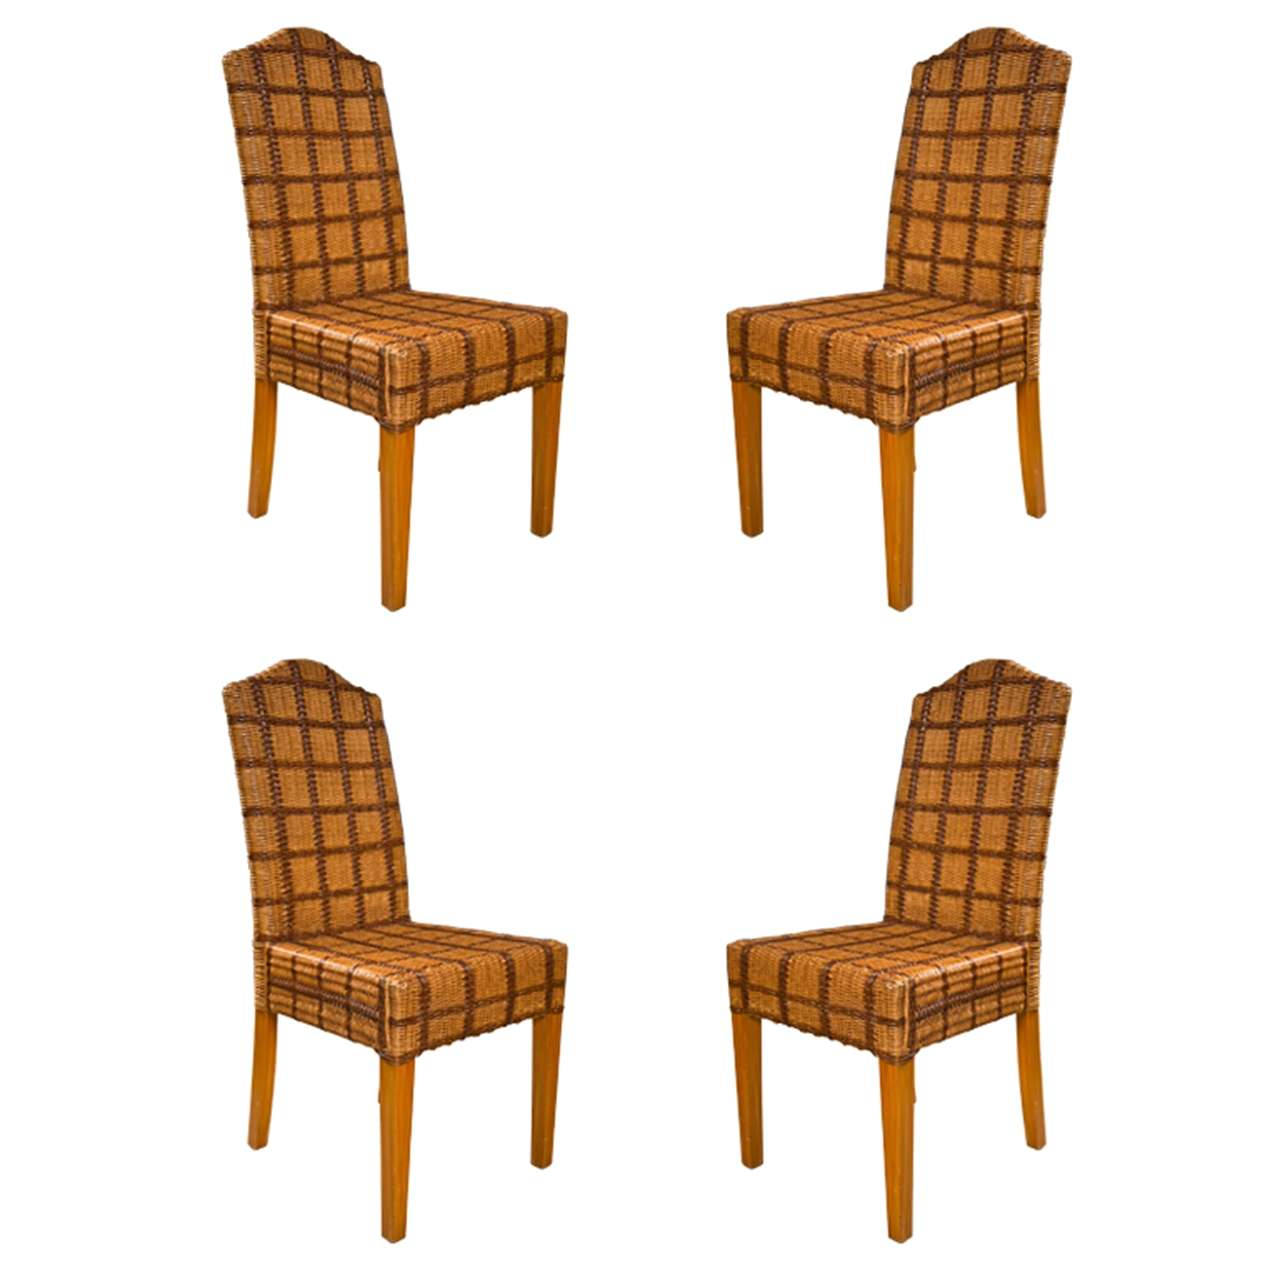 wicker chairs for sale u shaped chair cover set of four side by palelek tweed decorated